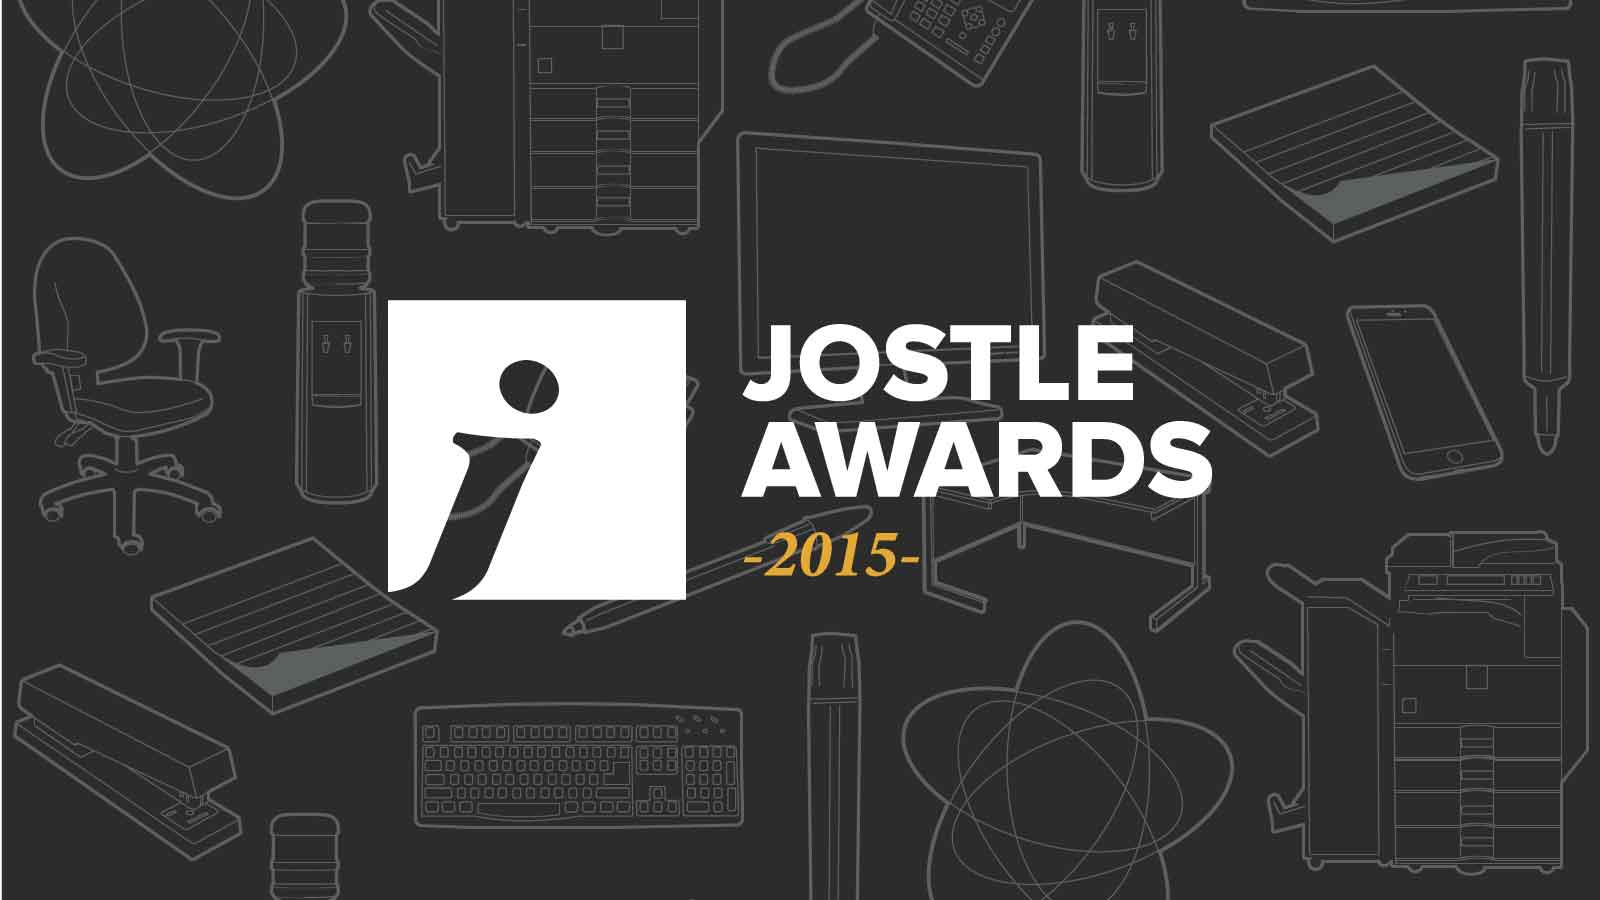 Jostle Awards 2015: Call for Nominations!